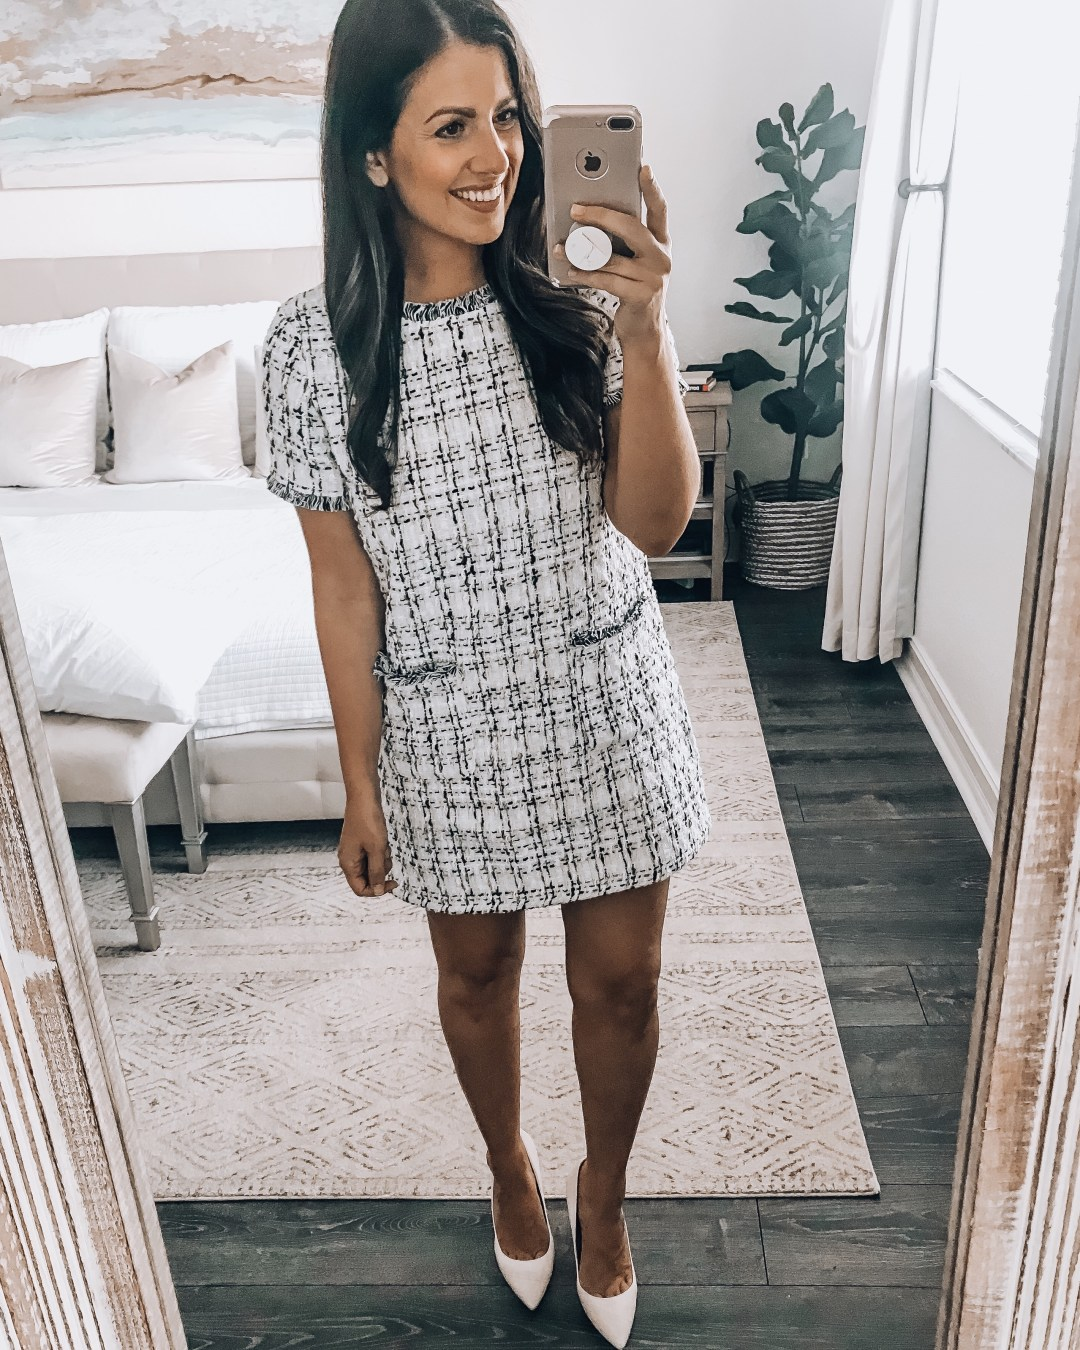 Amazon fashion twill white dress, twill tweed office dress, Chanel lookalike dress, Jaime Cittadino Florida fashion blogger